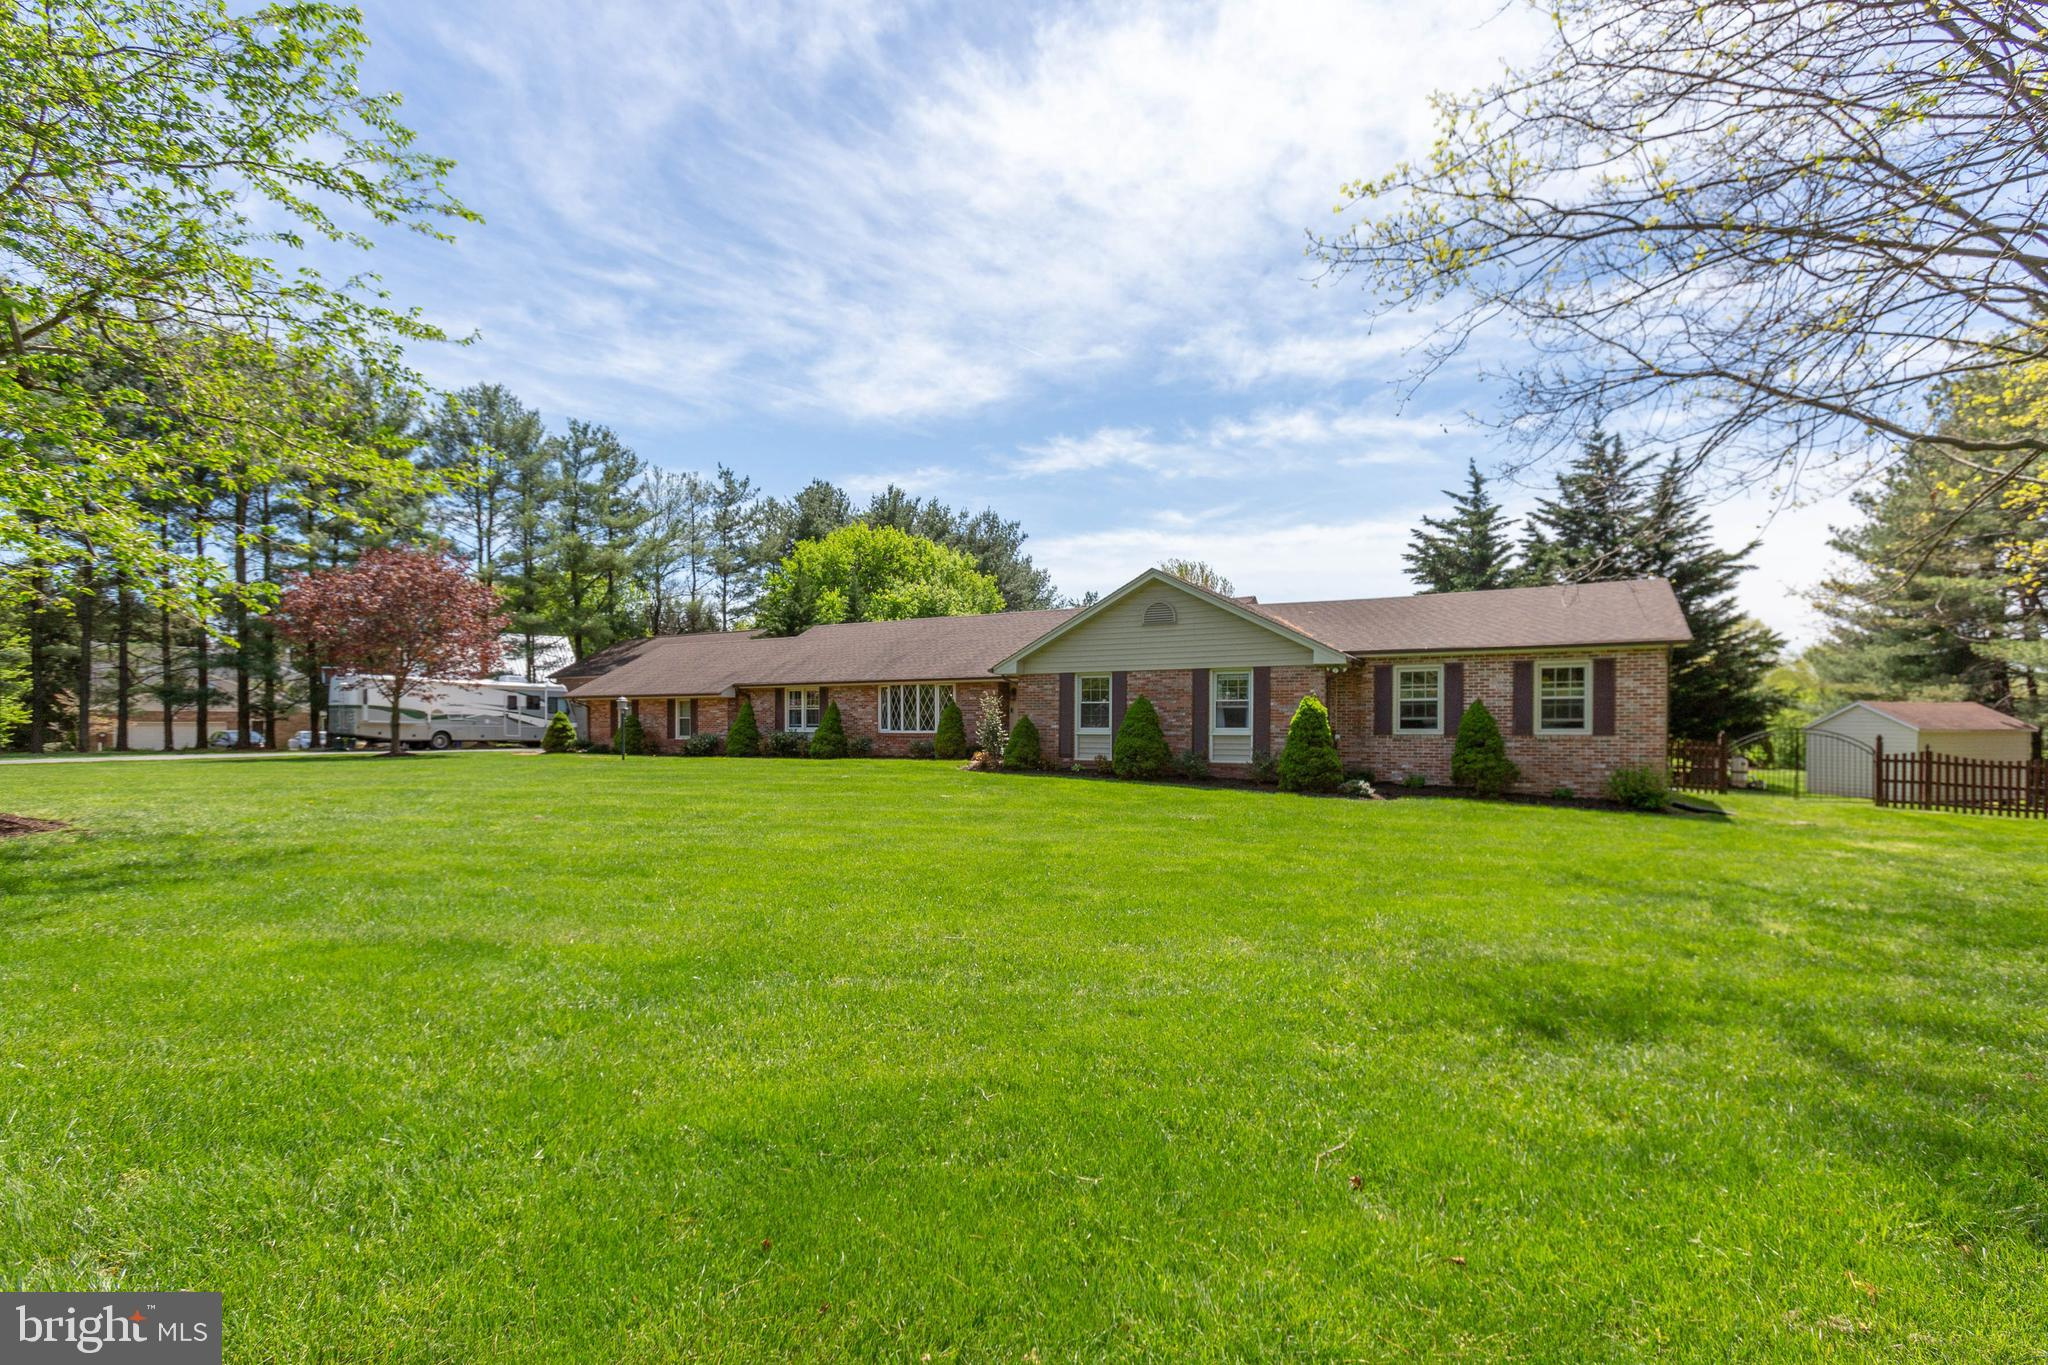 14557 MUSTANG PATH, GLENWOOD, MD 21738